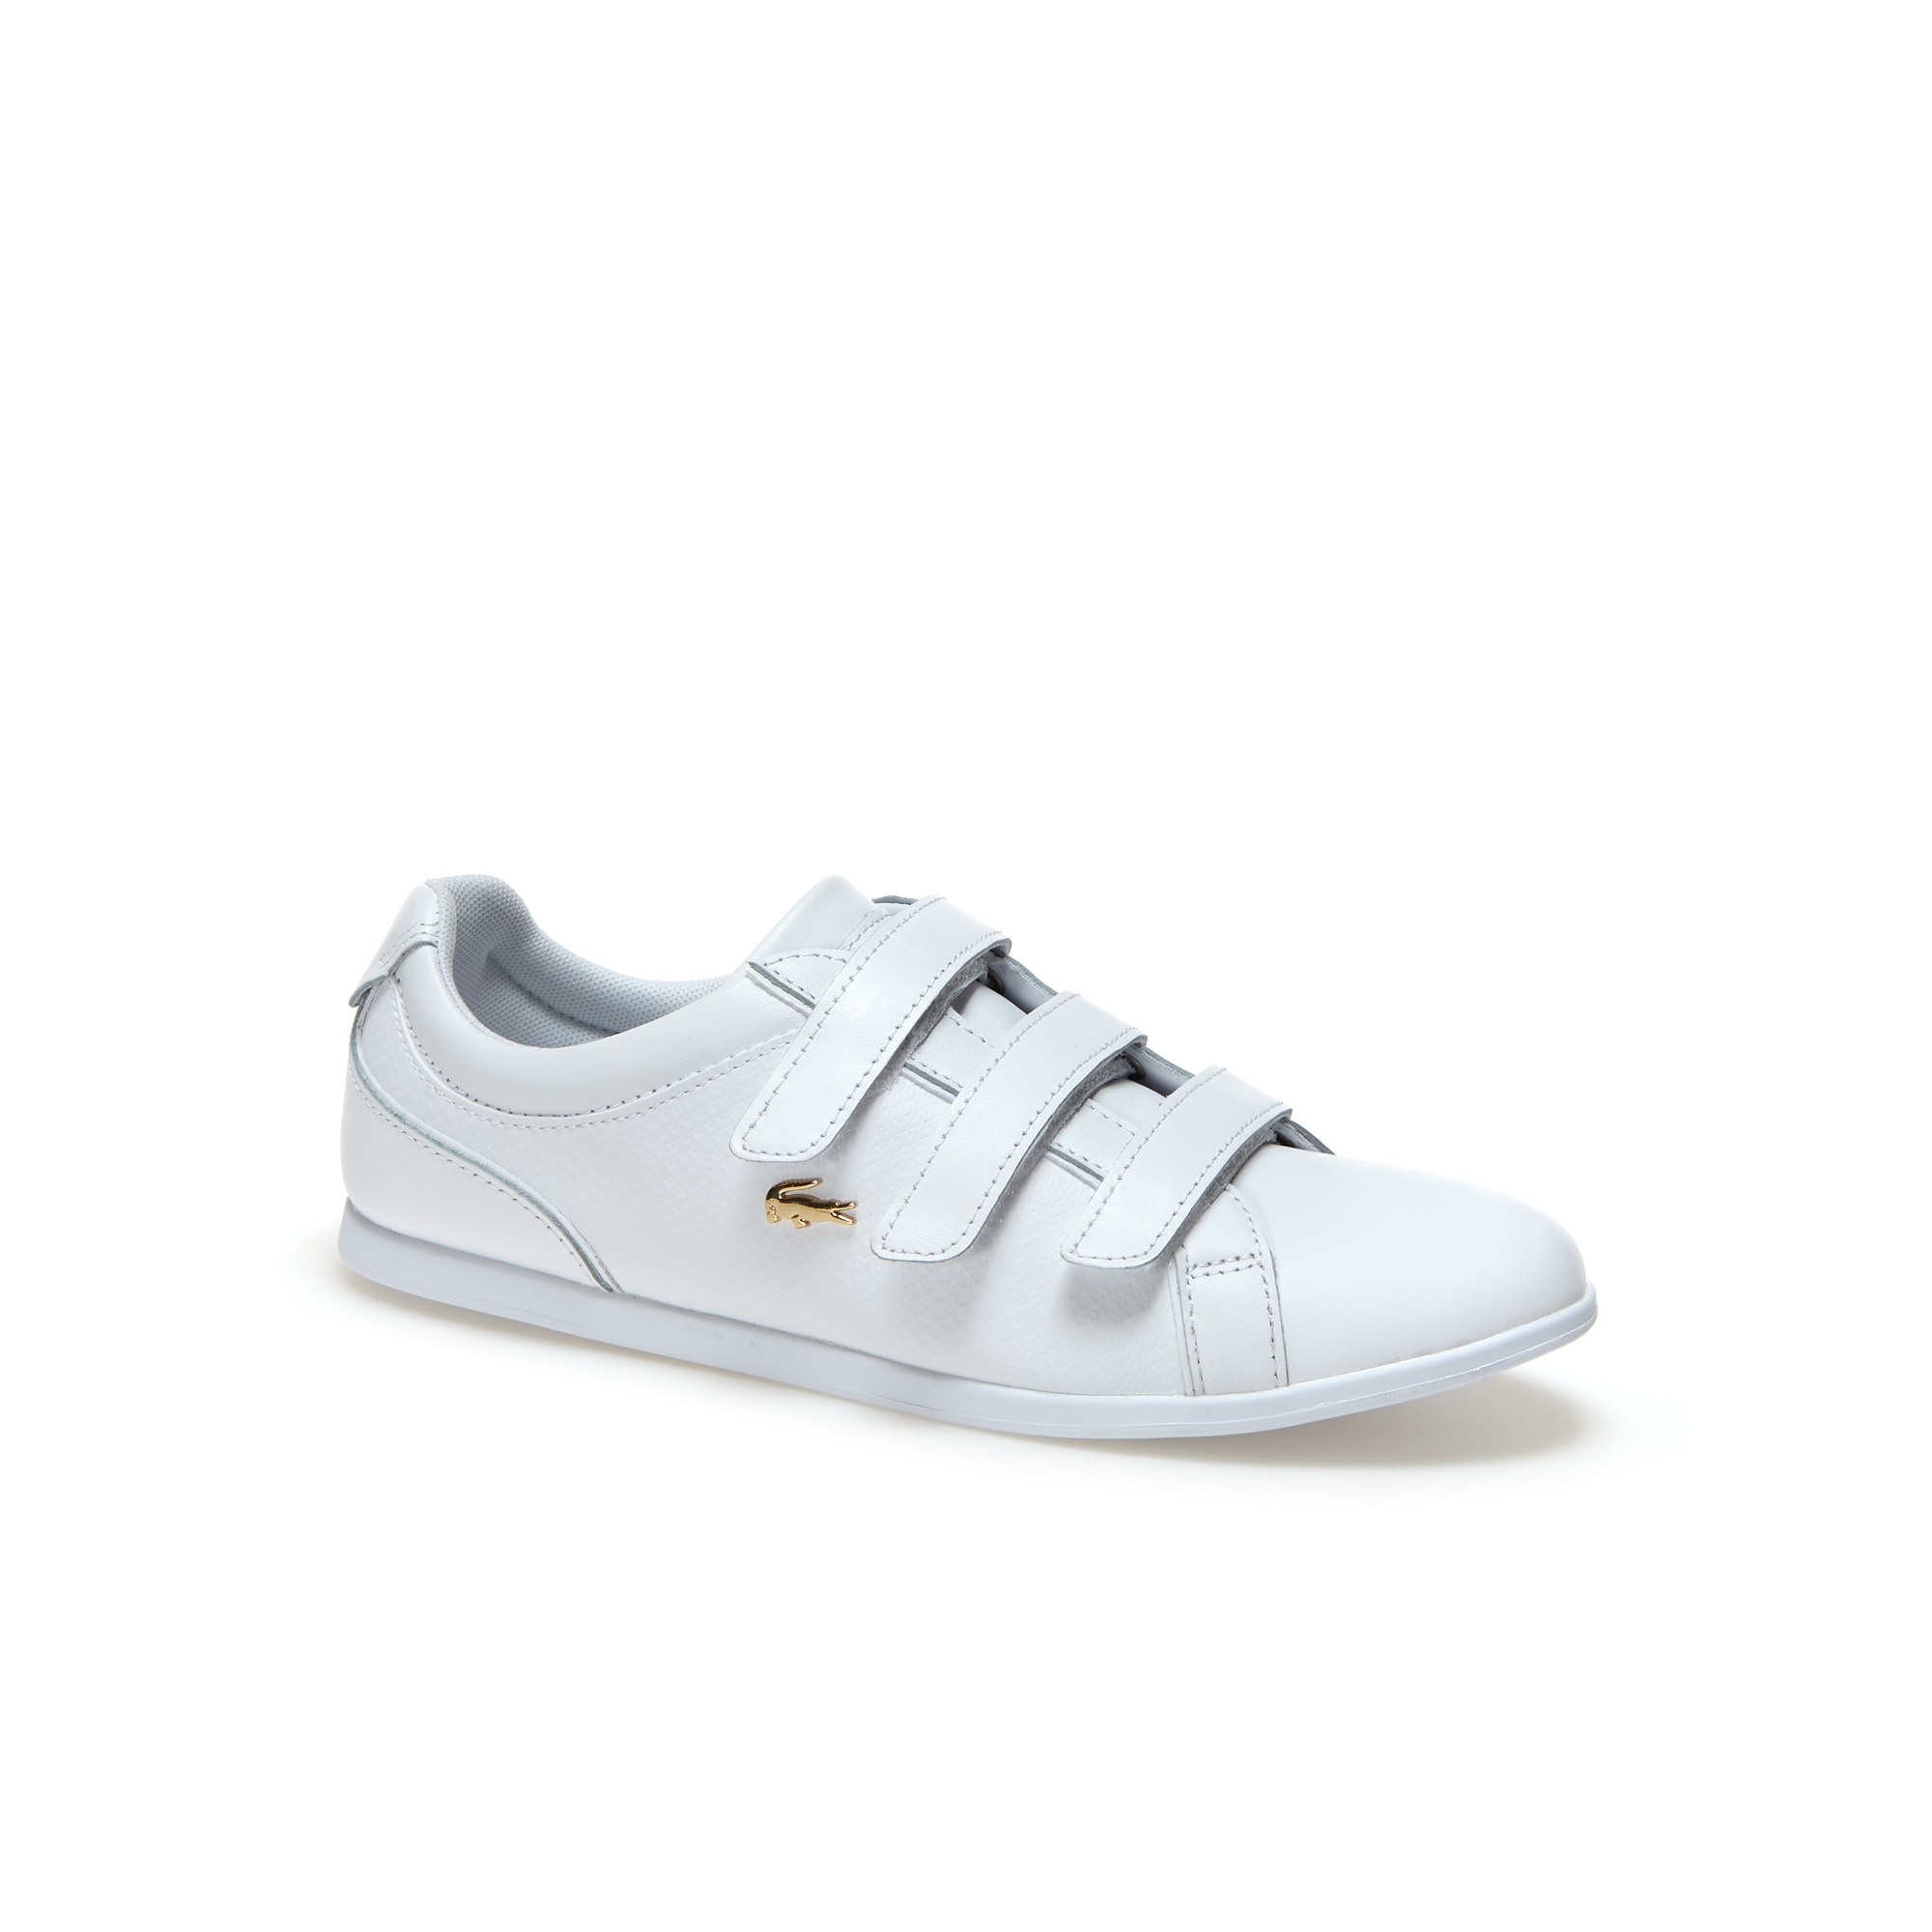 Women's Rey Strap Leather Trainers